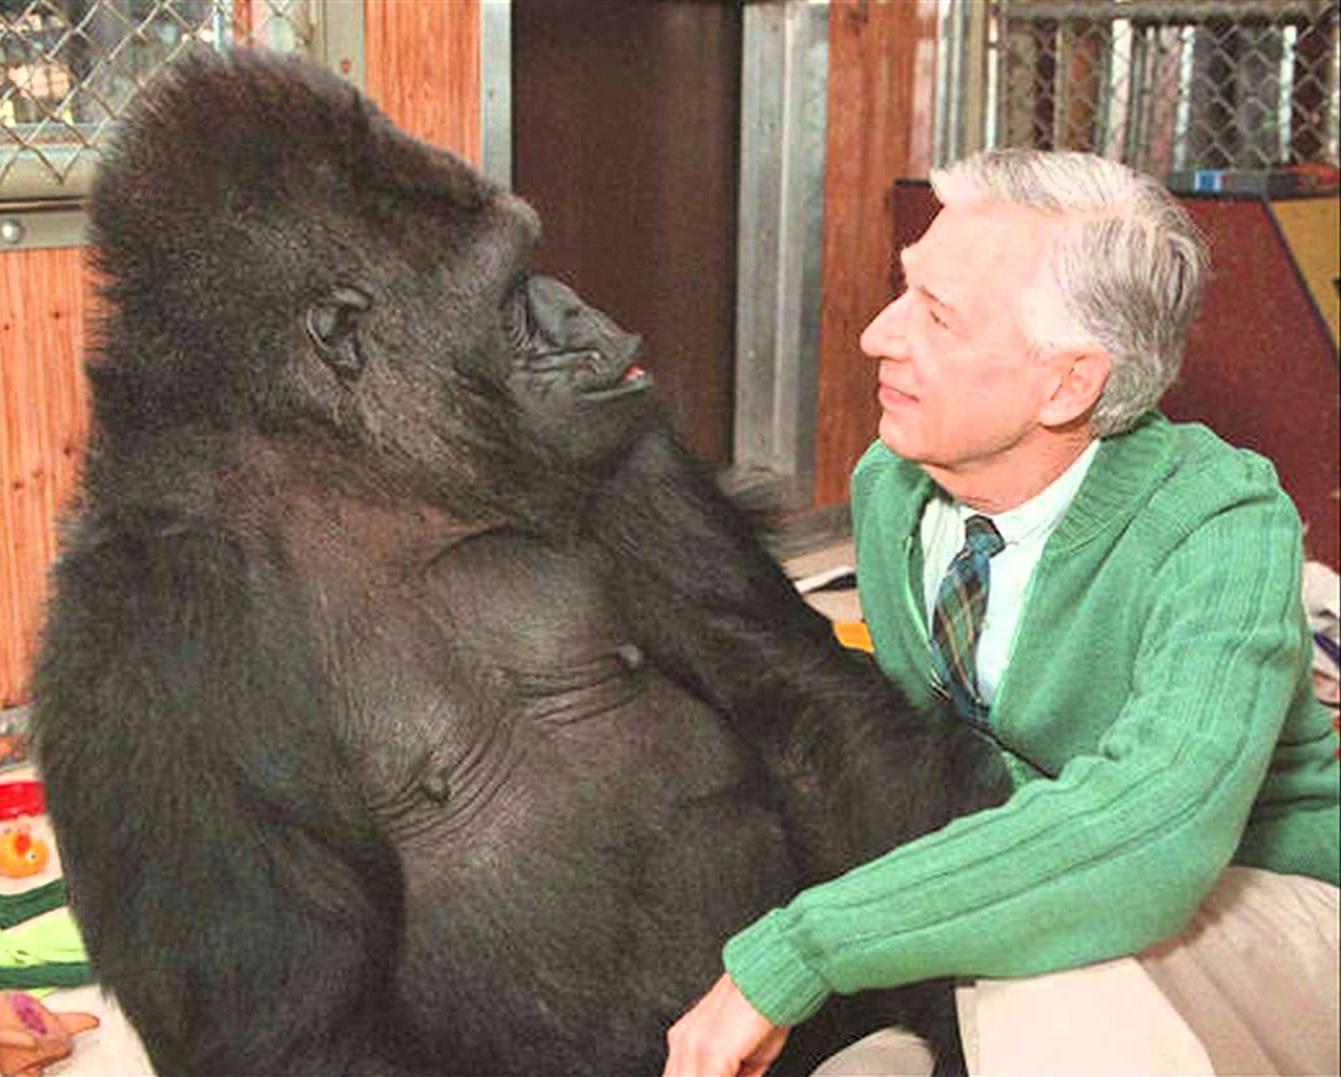 Oh no, Koko died. Koko and Mr. Rogers are some of the greatest photos of our time. RIP https://t.co/aXhTdn6b31 https://t.co/95RwuHYars